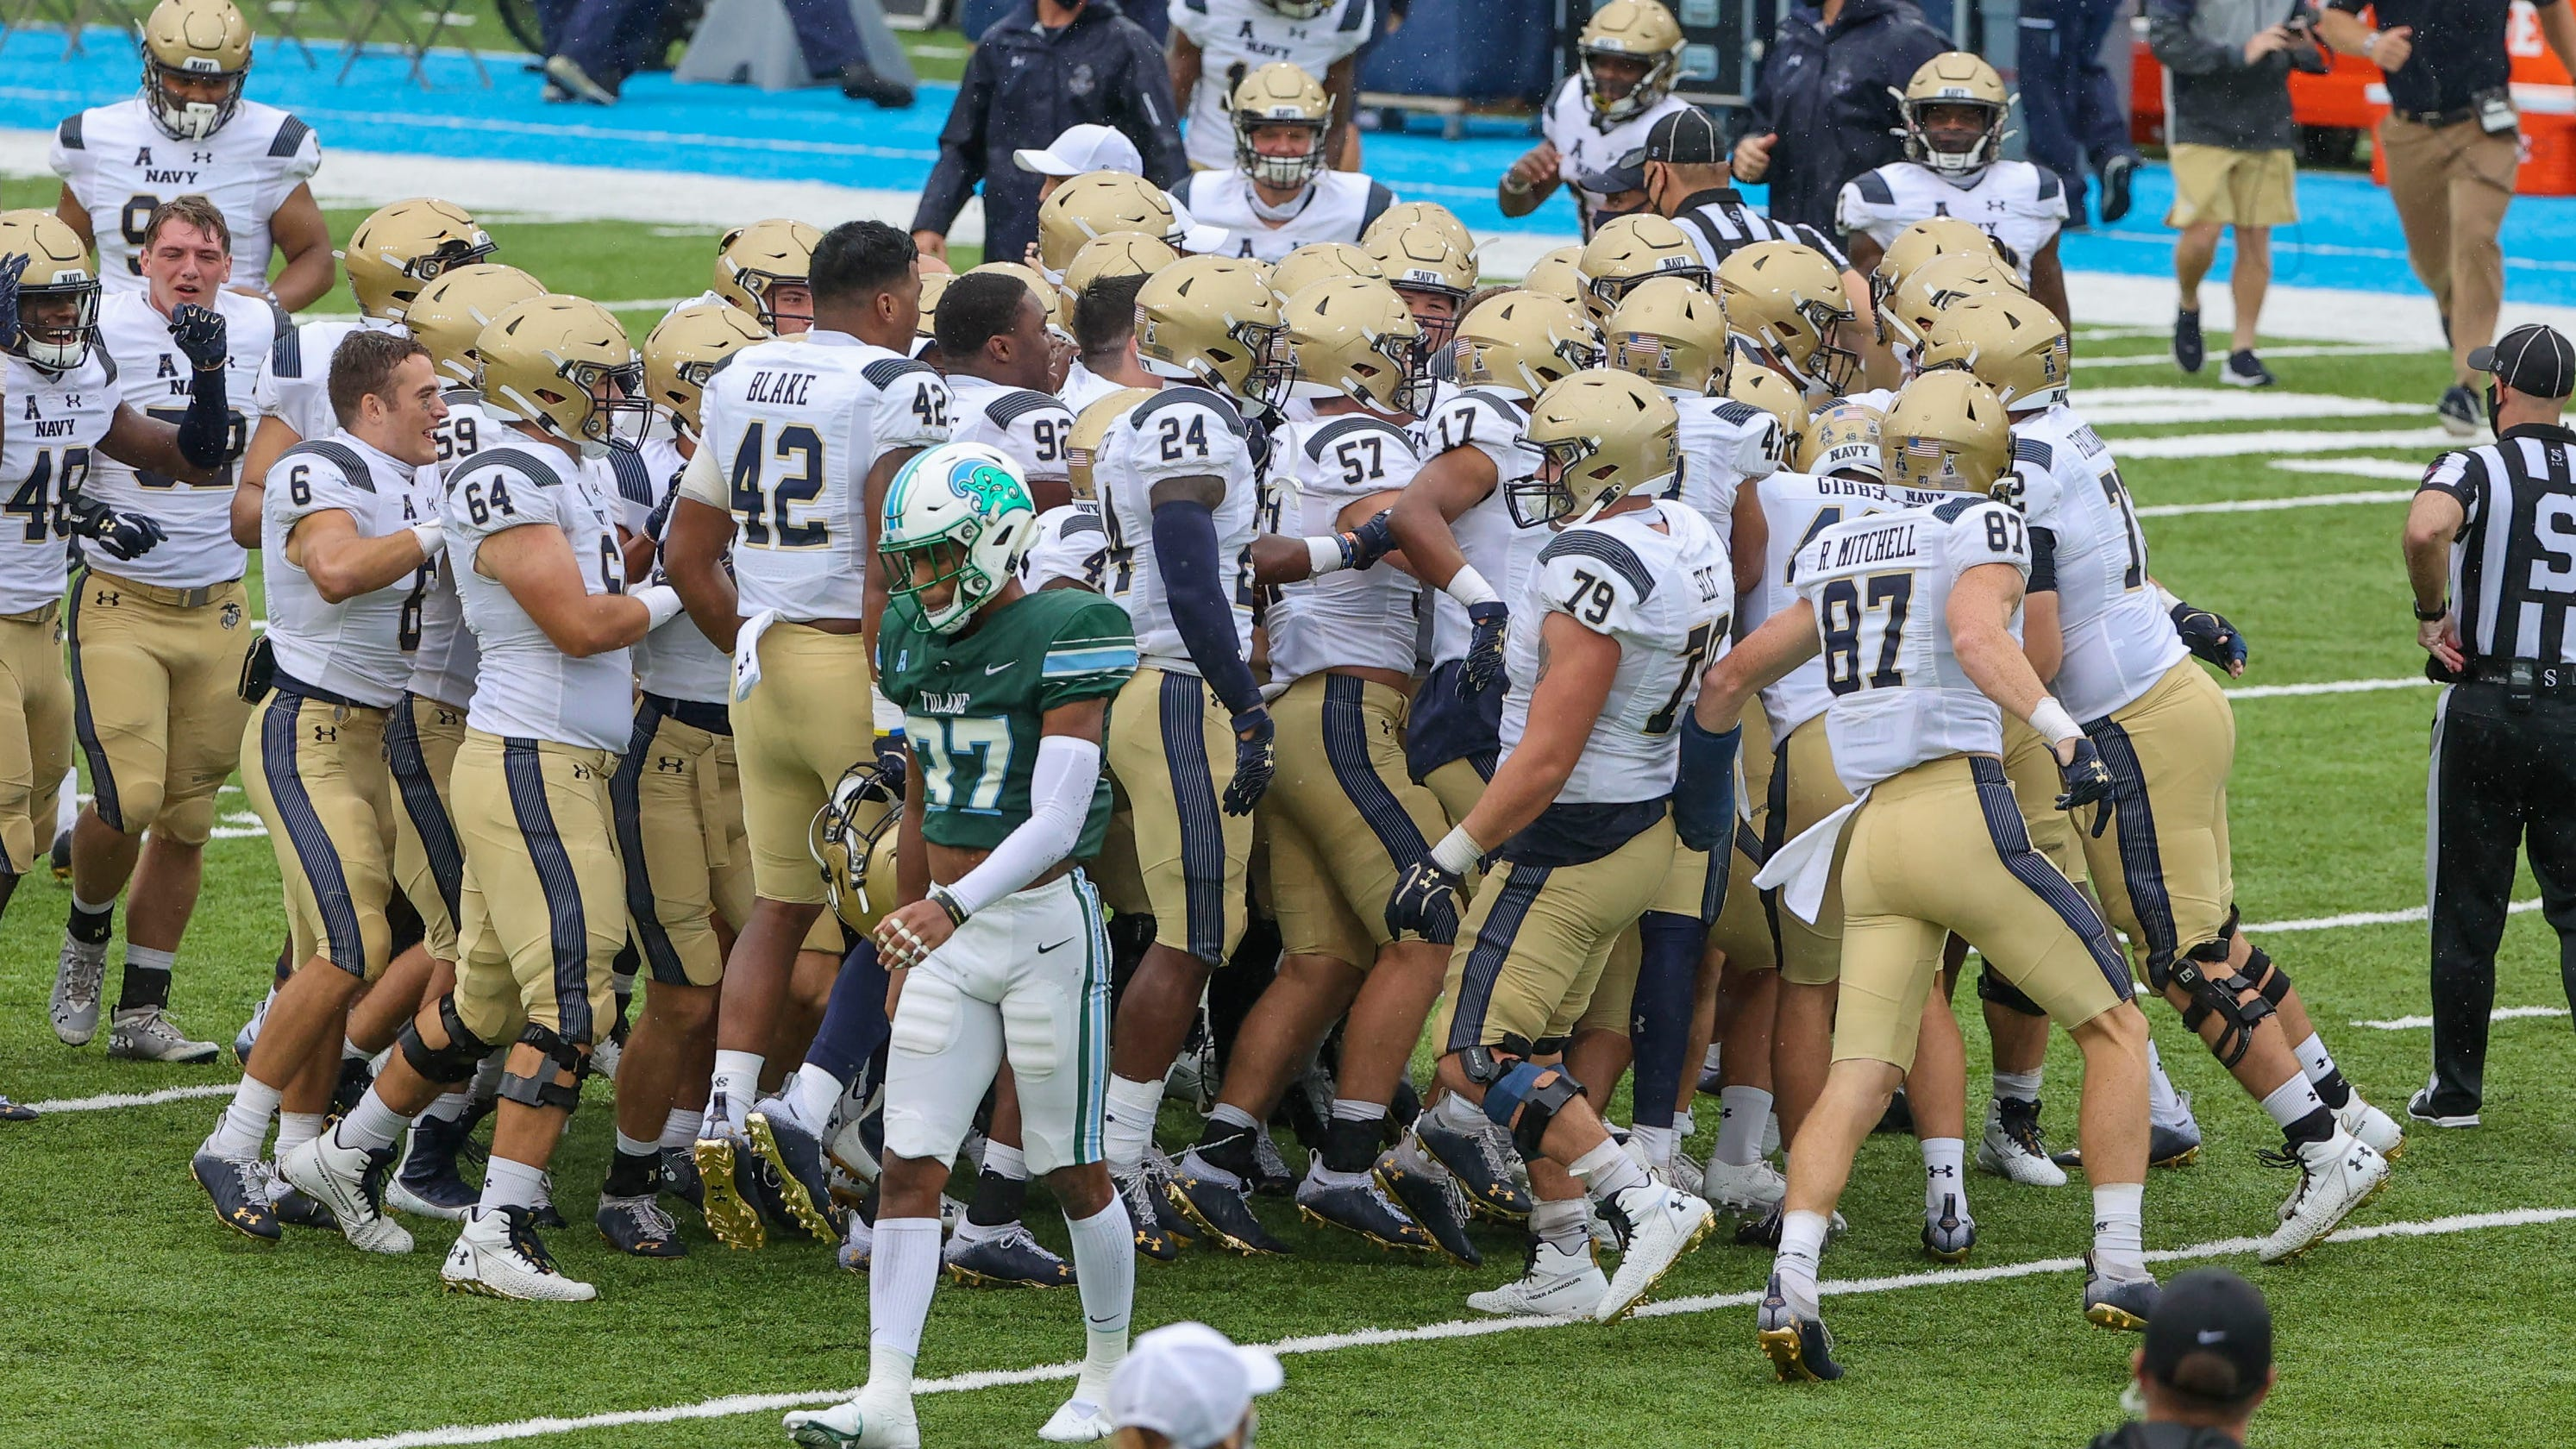 Tulane's loss to Navy will sting, and Tulsa missed an opportunity